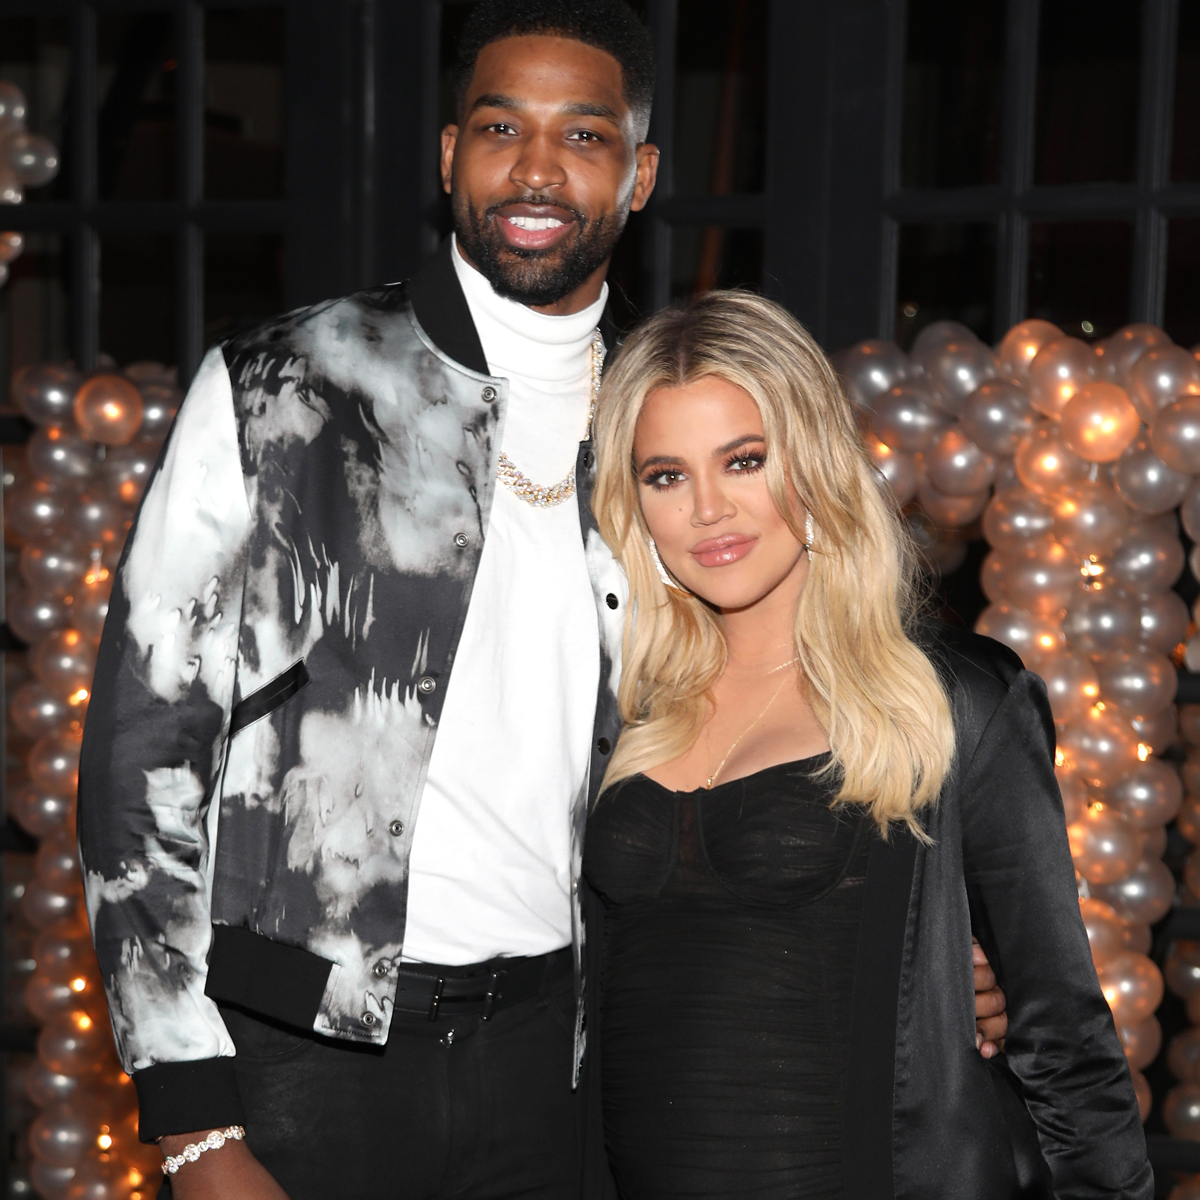 Tristan Thompson Surprises Khloe Kardashian With Massive Bouquet After People's Choice Awards Win